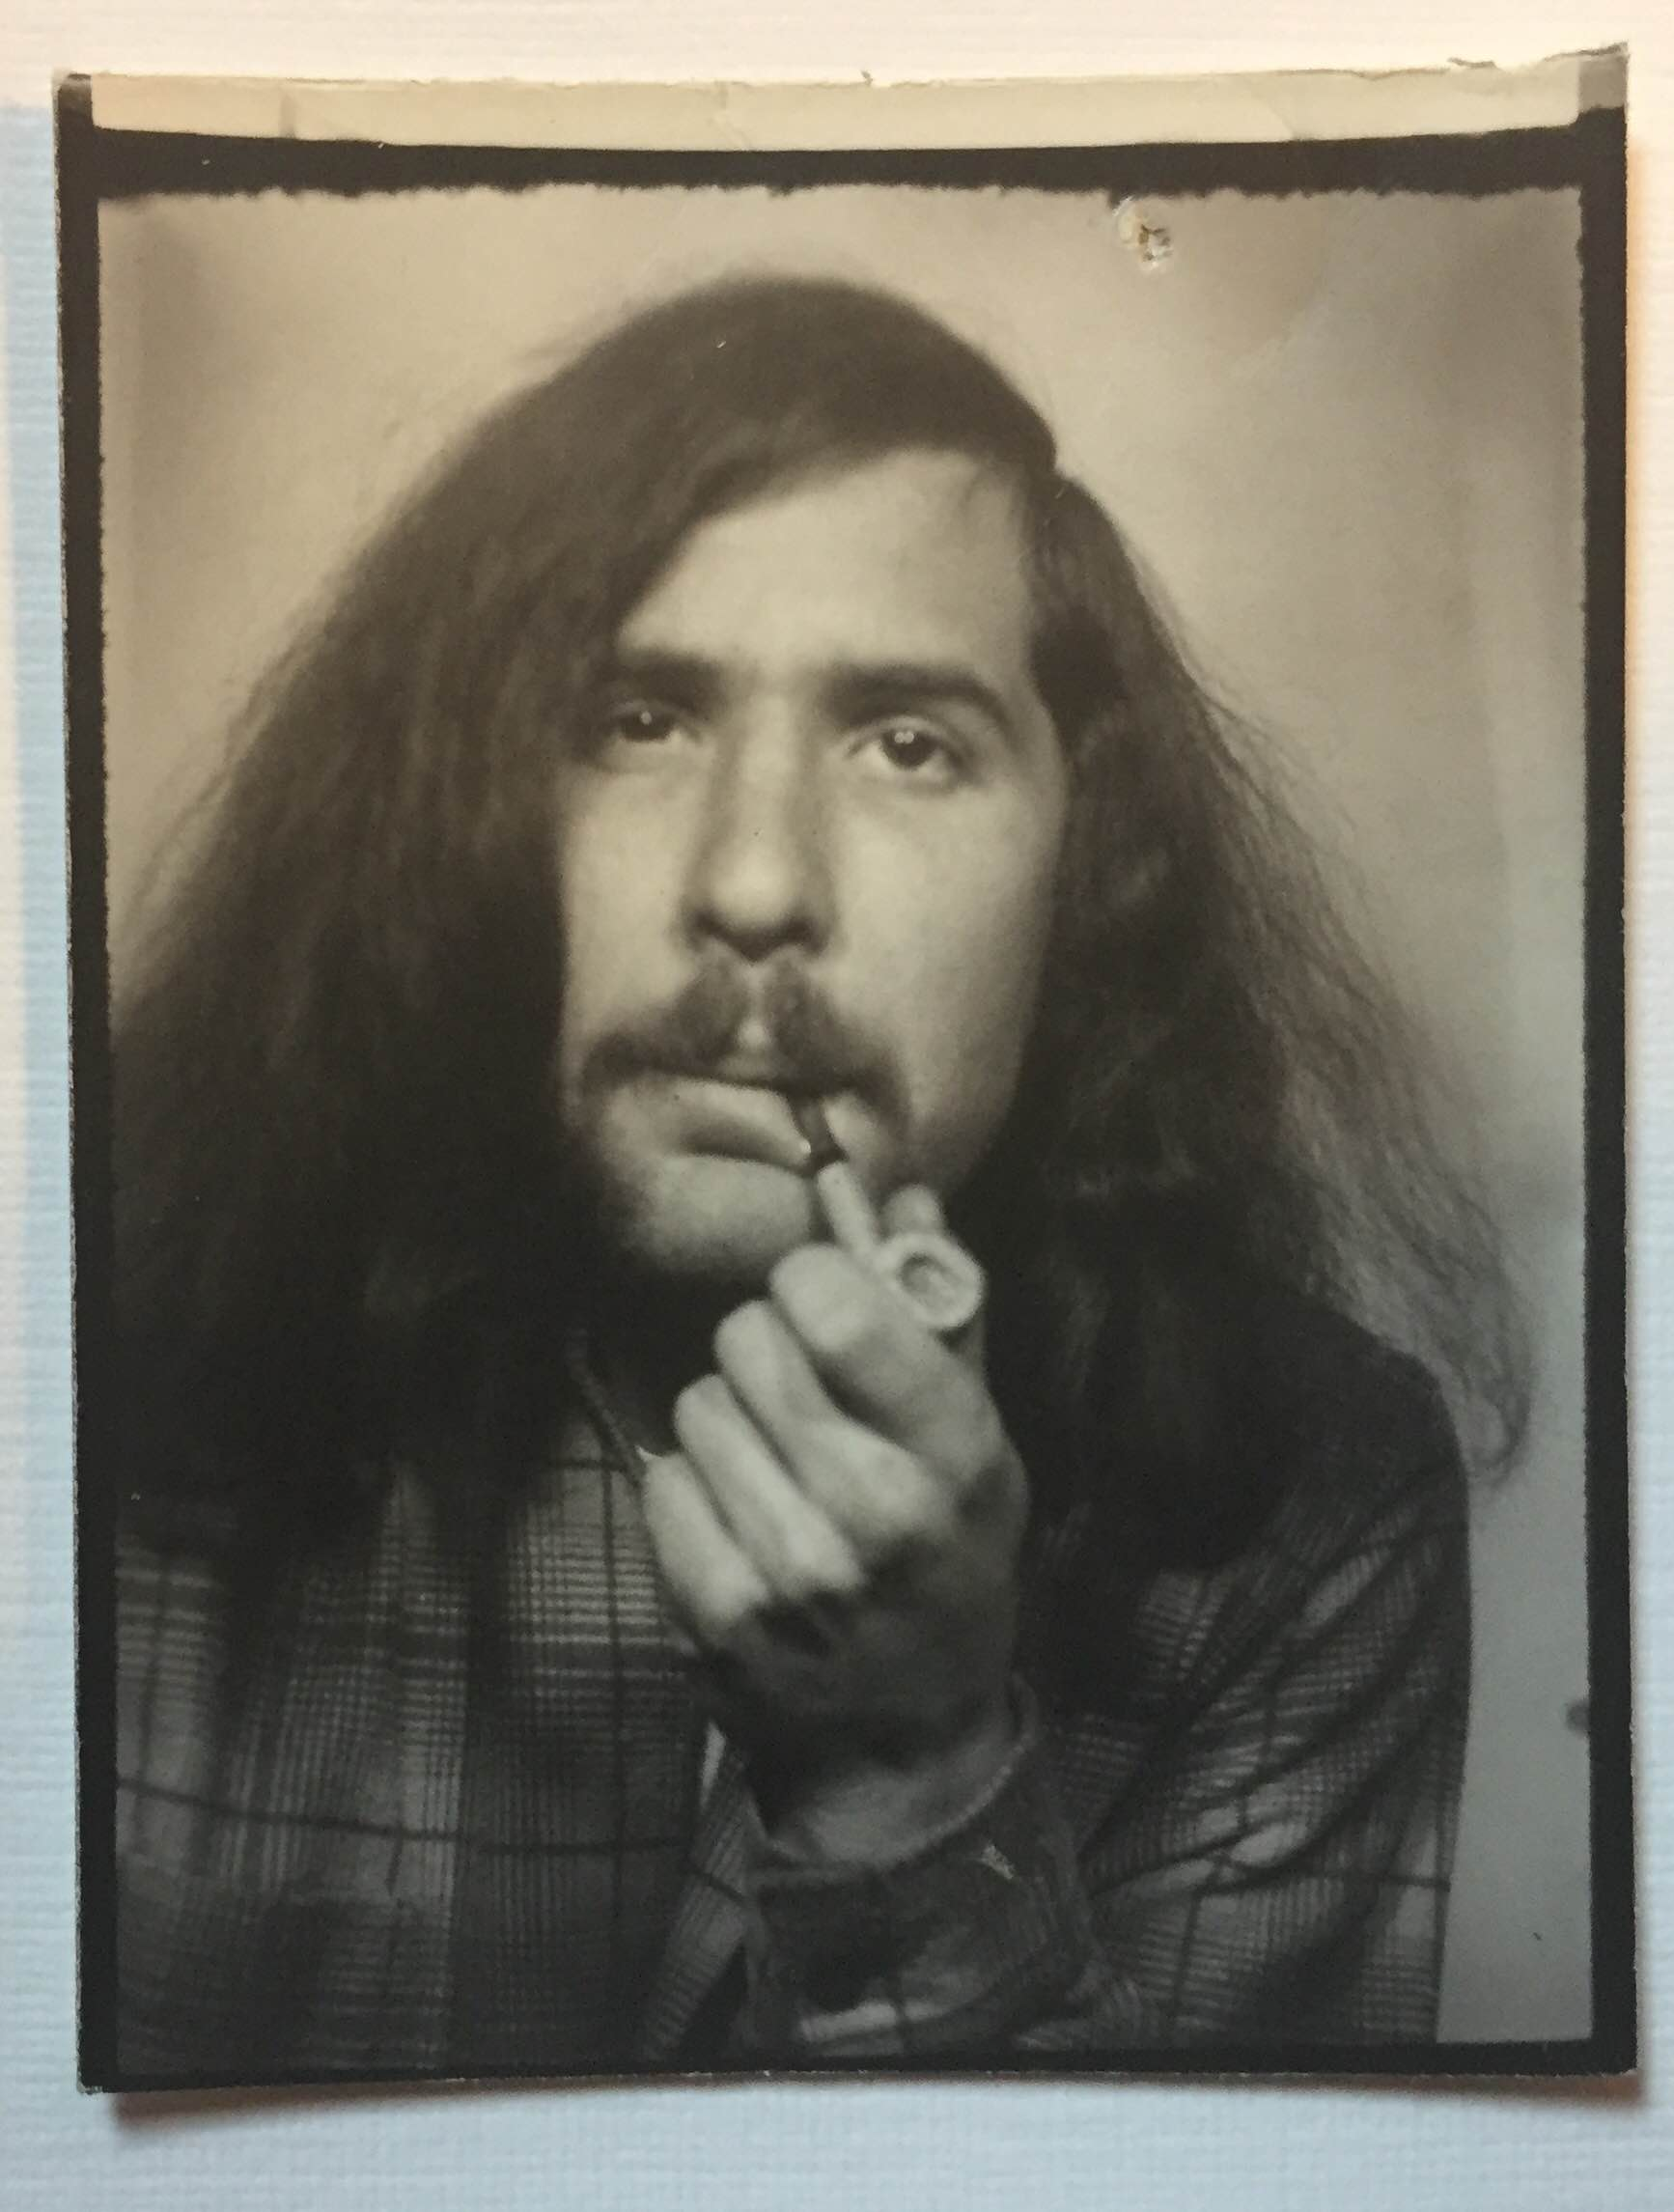 A section of a photo booth strip featuring my father and a pipe (c. 1975).